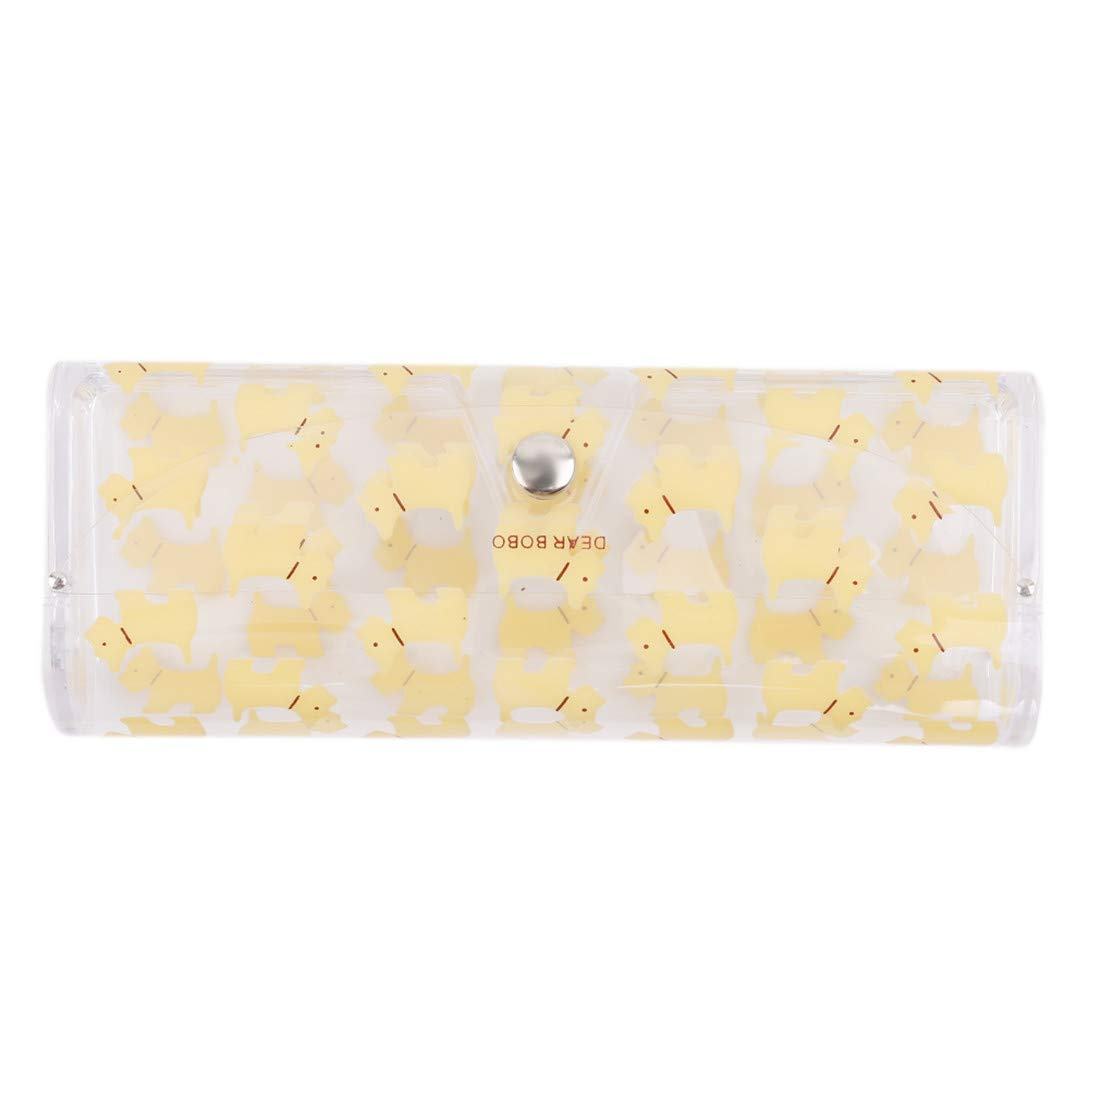 VWH Glasees Case Colorful Spectacles Protection Cases(Yellow)